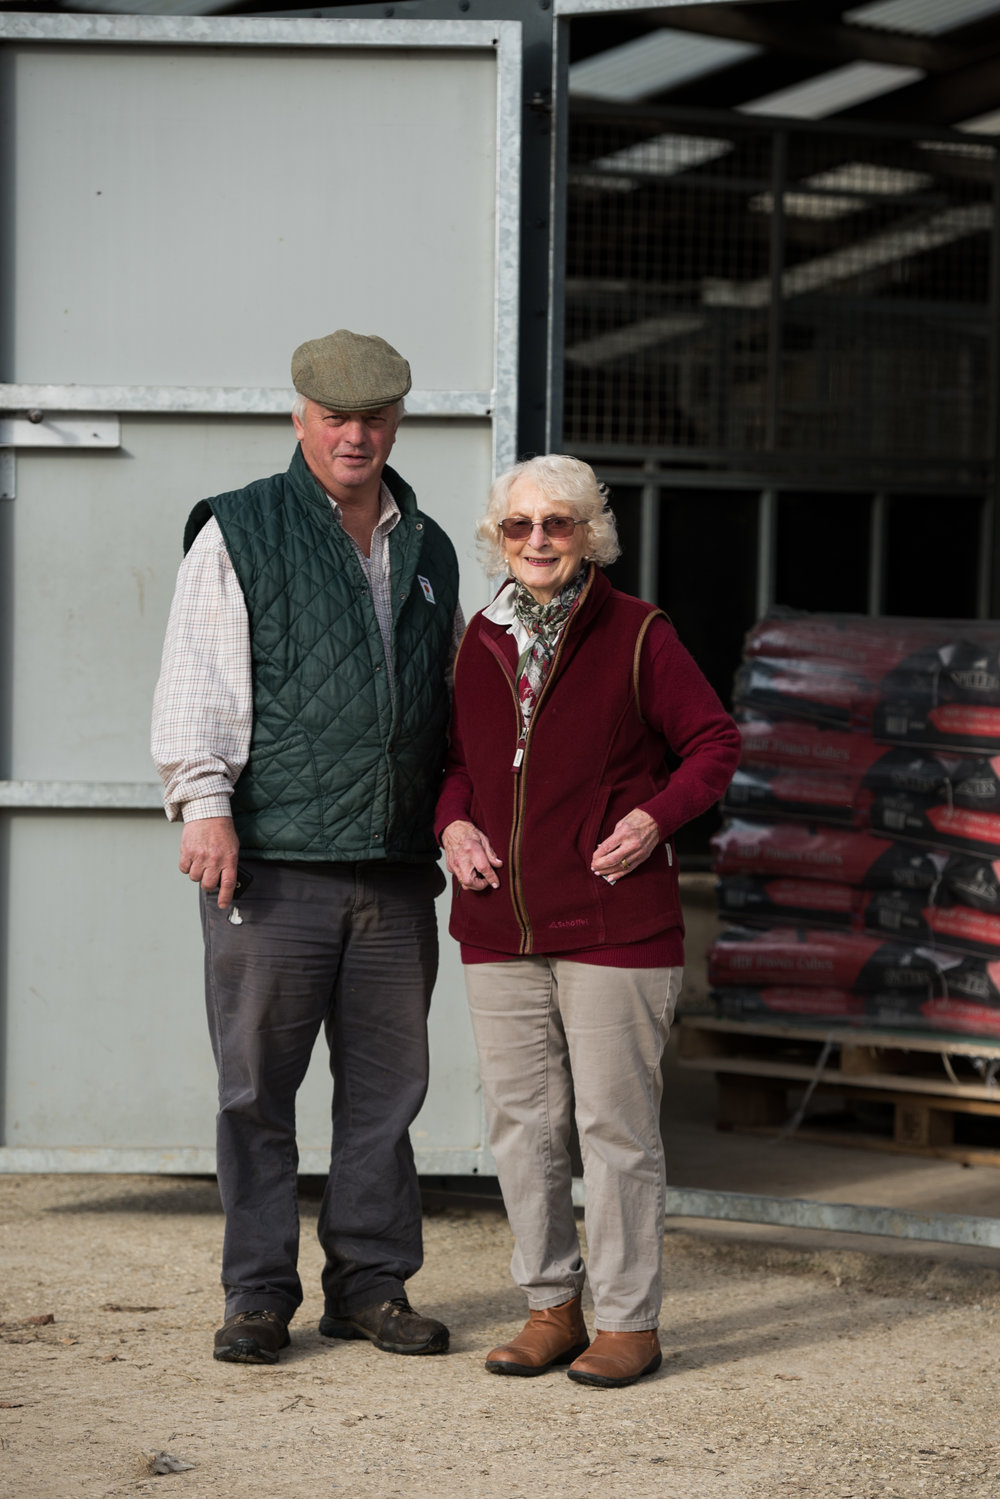 Colin with his mother Marjorie, a frequent visitor to the yard